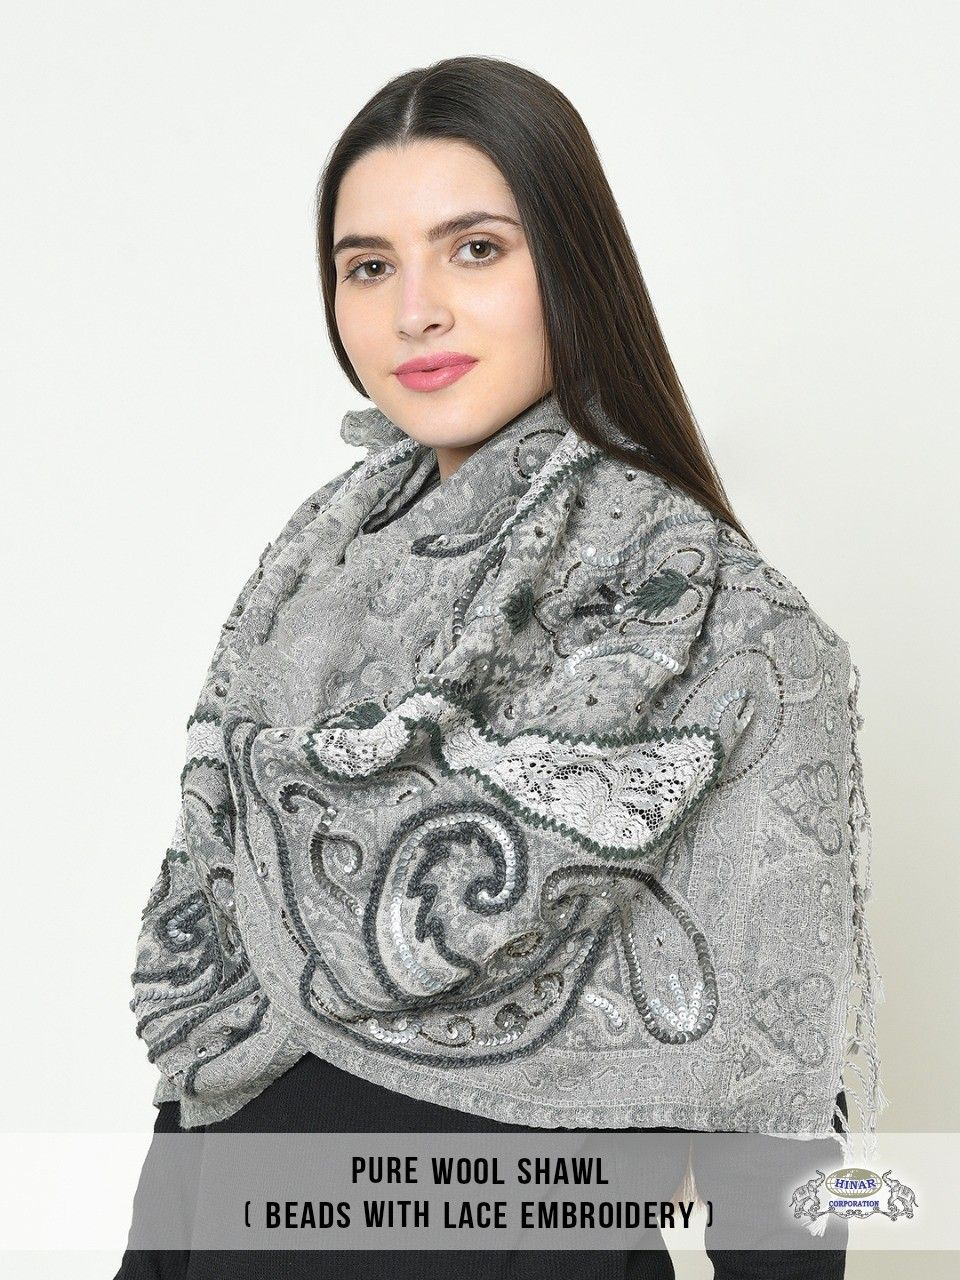 Pure wool shawl beaded with lace embroidery to wrap around this autumn winter season.  #purewool #woolshawls #shawl #shawltrends #shawlstyle #shawlmurah #shawlinstant #instashawl #instalike #instafashion #fashionmodel #fashionaccessories #shawlprinted #luxuryfashion #beaded #laceembroidery #embriodery #wintercollection #scarfseason #scarvescollection #fashionblogger #fashionstyle #luxurydesign #highquality #pashmina #mufflers #woolenshawl #instawrap